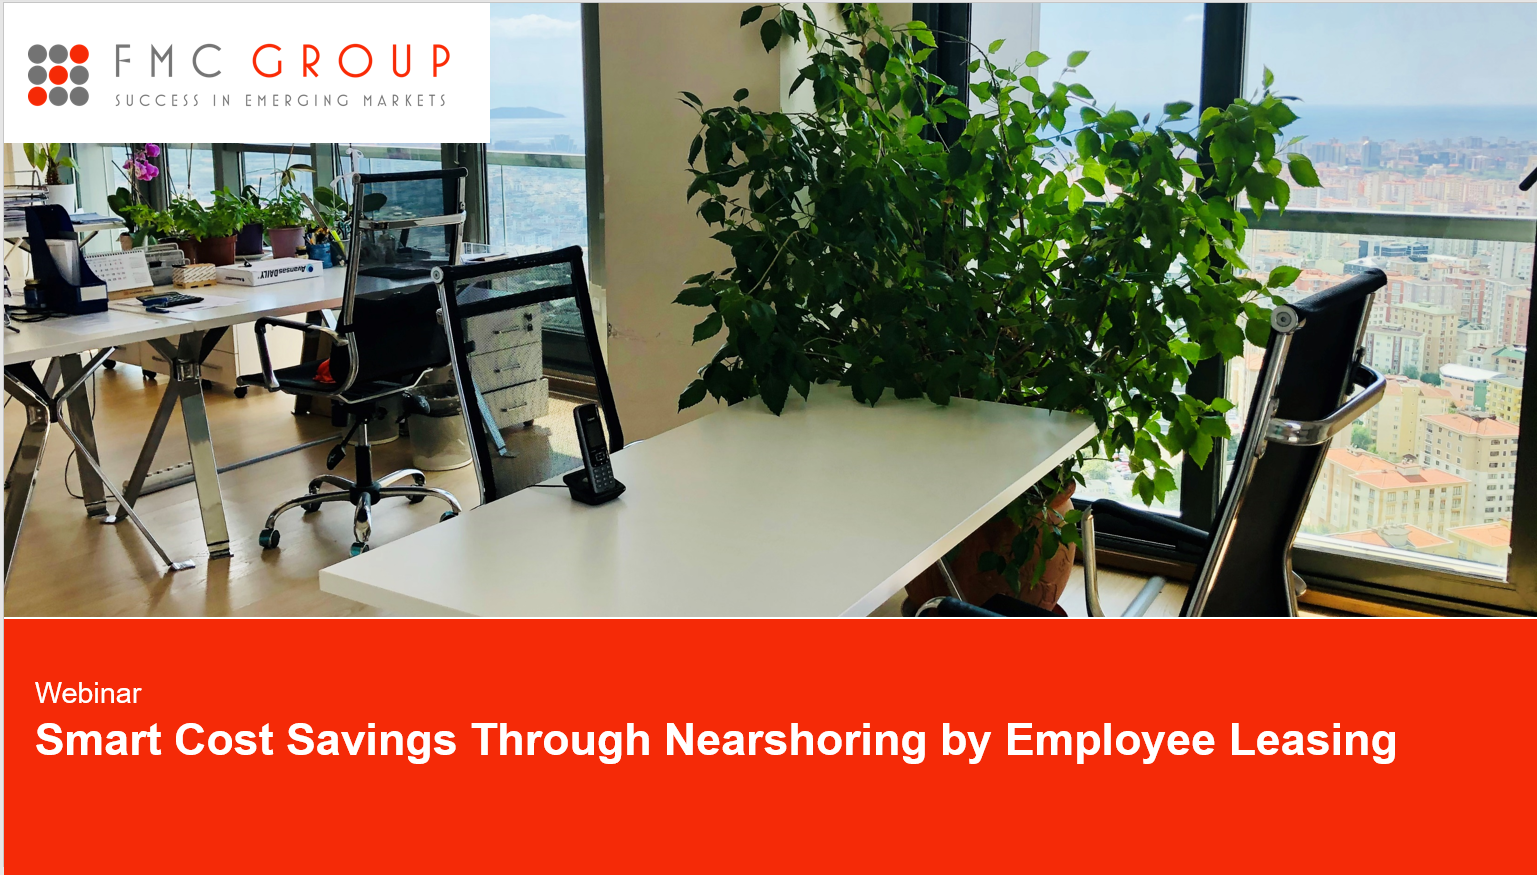 cover page of Webinar - Smart Cost Savings Through Nearshoring by Employee Leasing